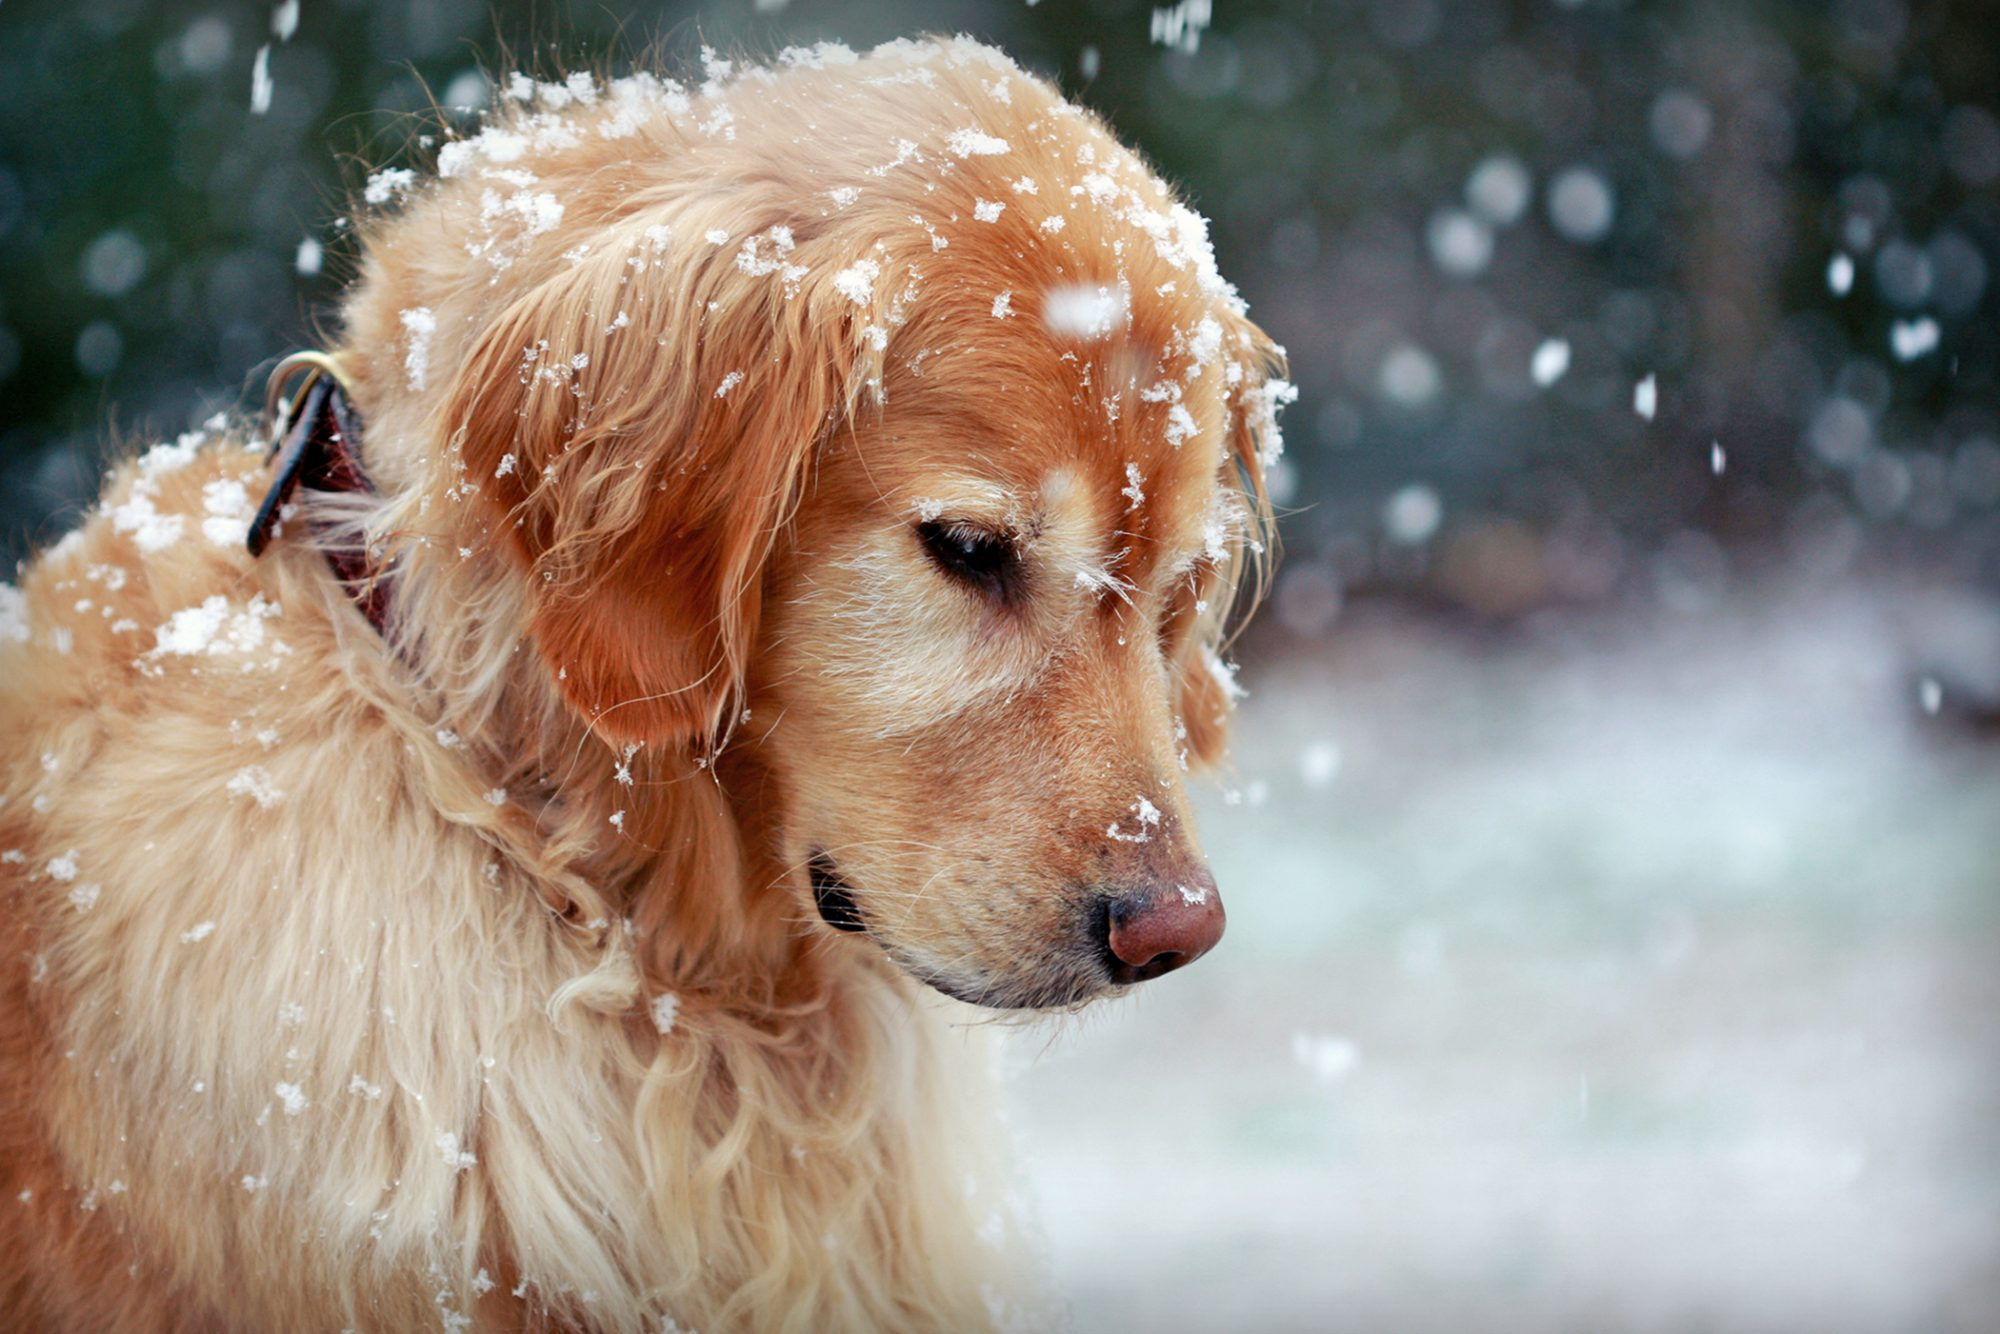 Golden retriever watches a snowflake intently